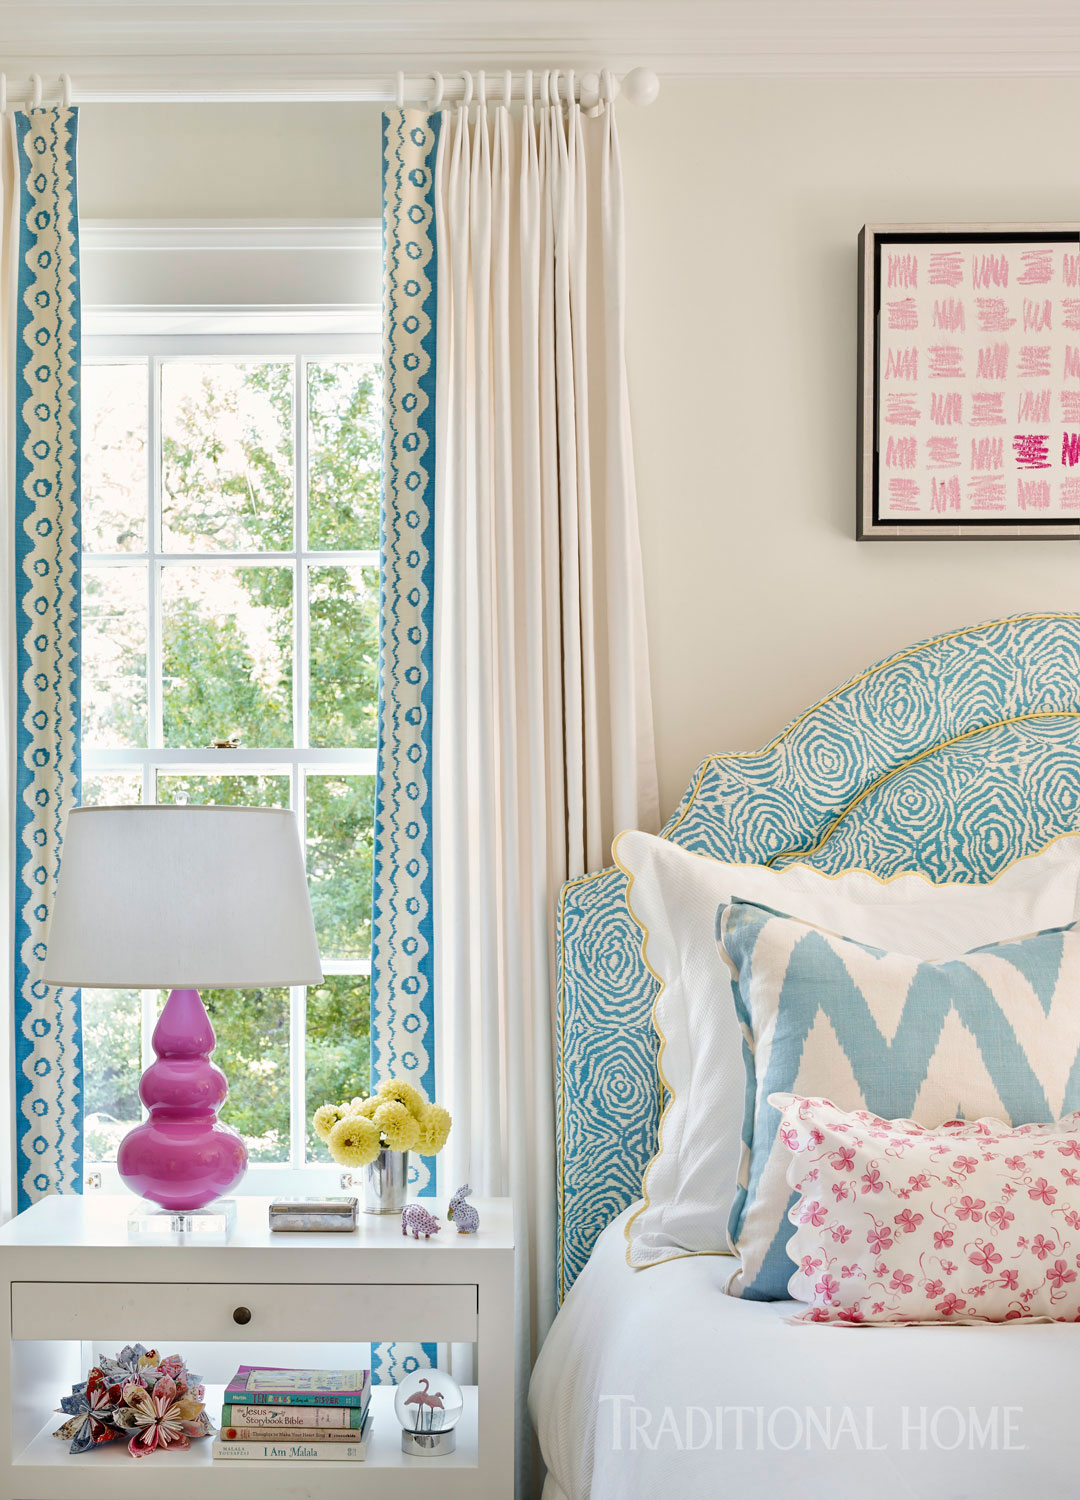 Blue, pink, and white set the pretty palette in this feminine bedroom.